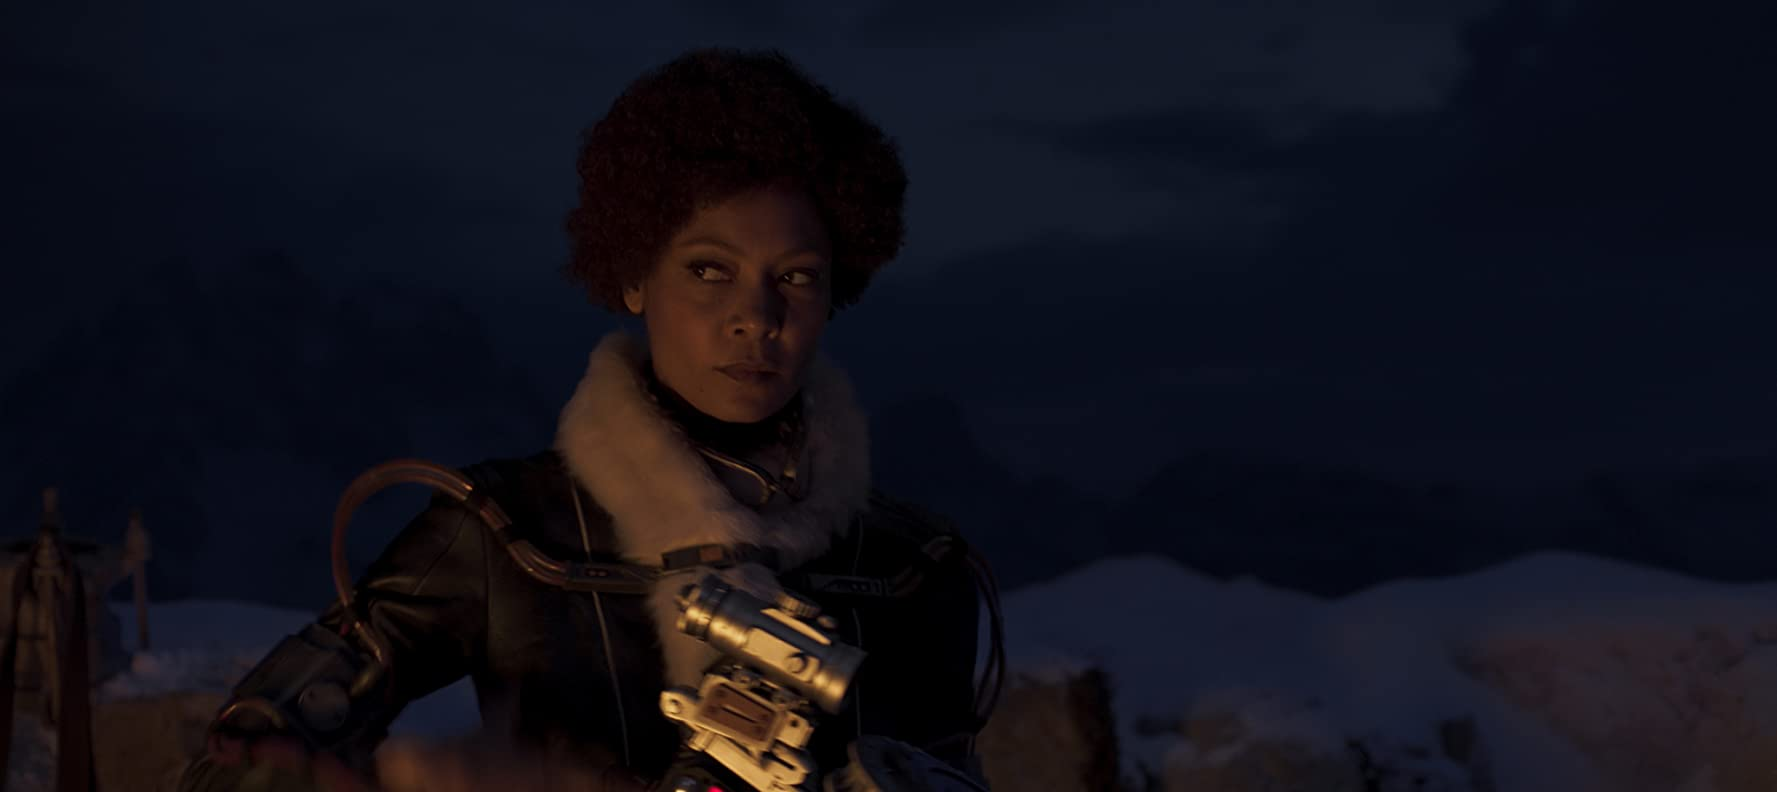 Thandie Newton in Solo: A Star Wars Story (2018)